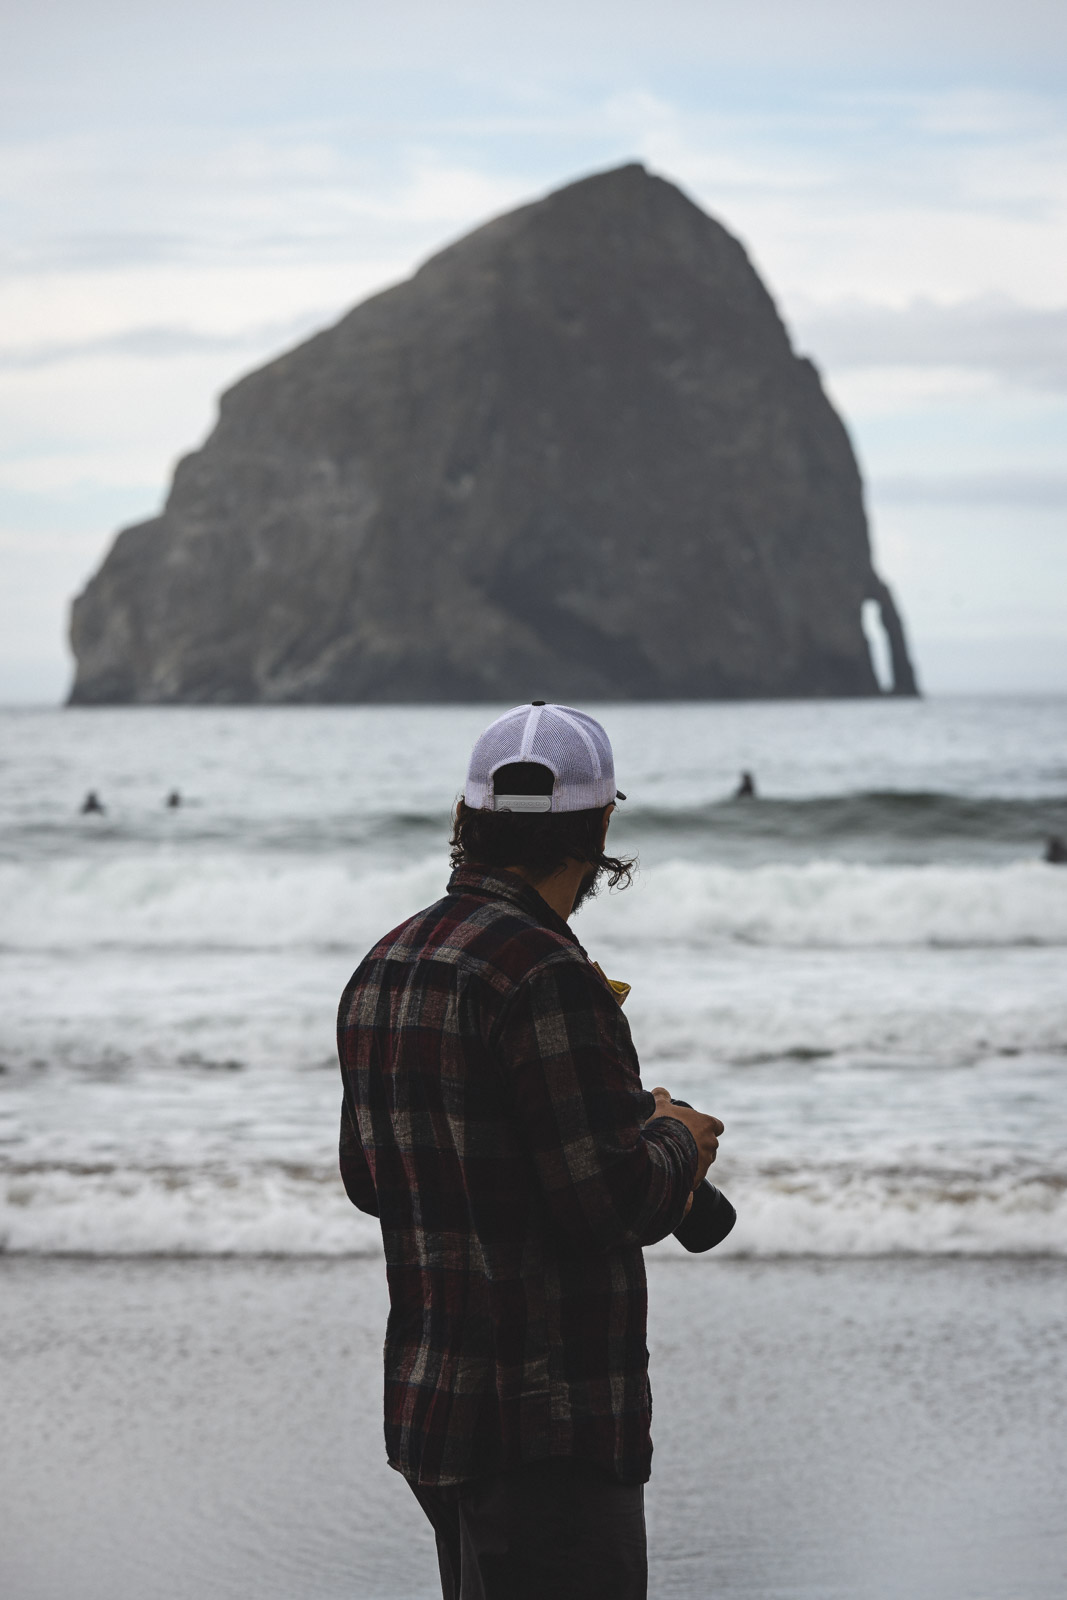 Man standing with camera and looking out to rock island in ocean at Cape Kiwanda, one of the Oregon Coast beaches